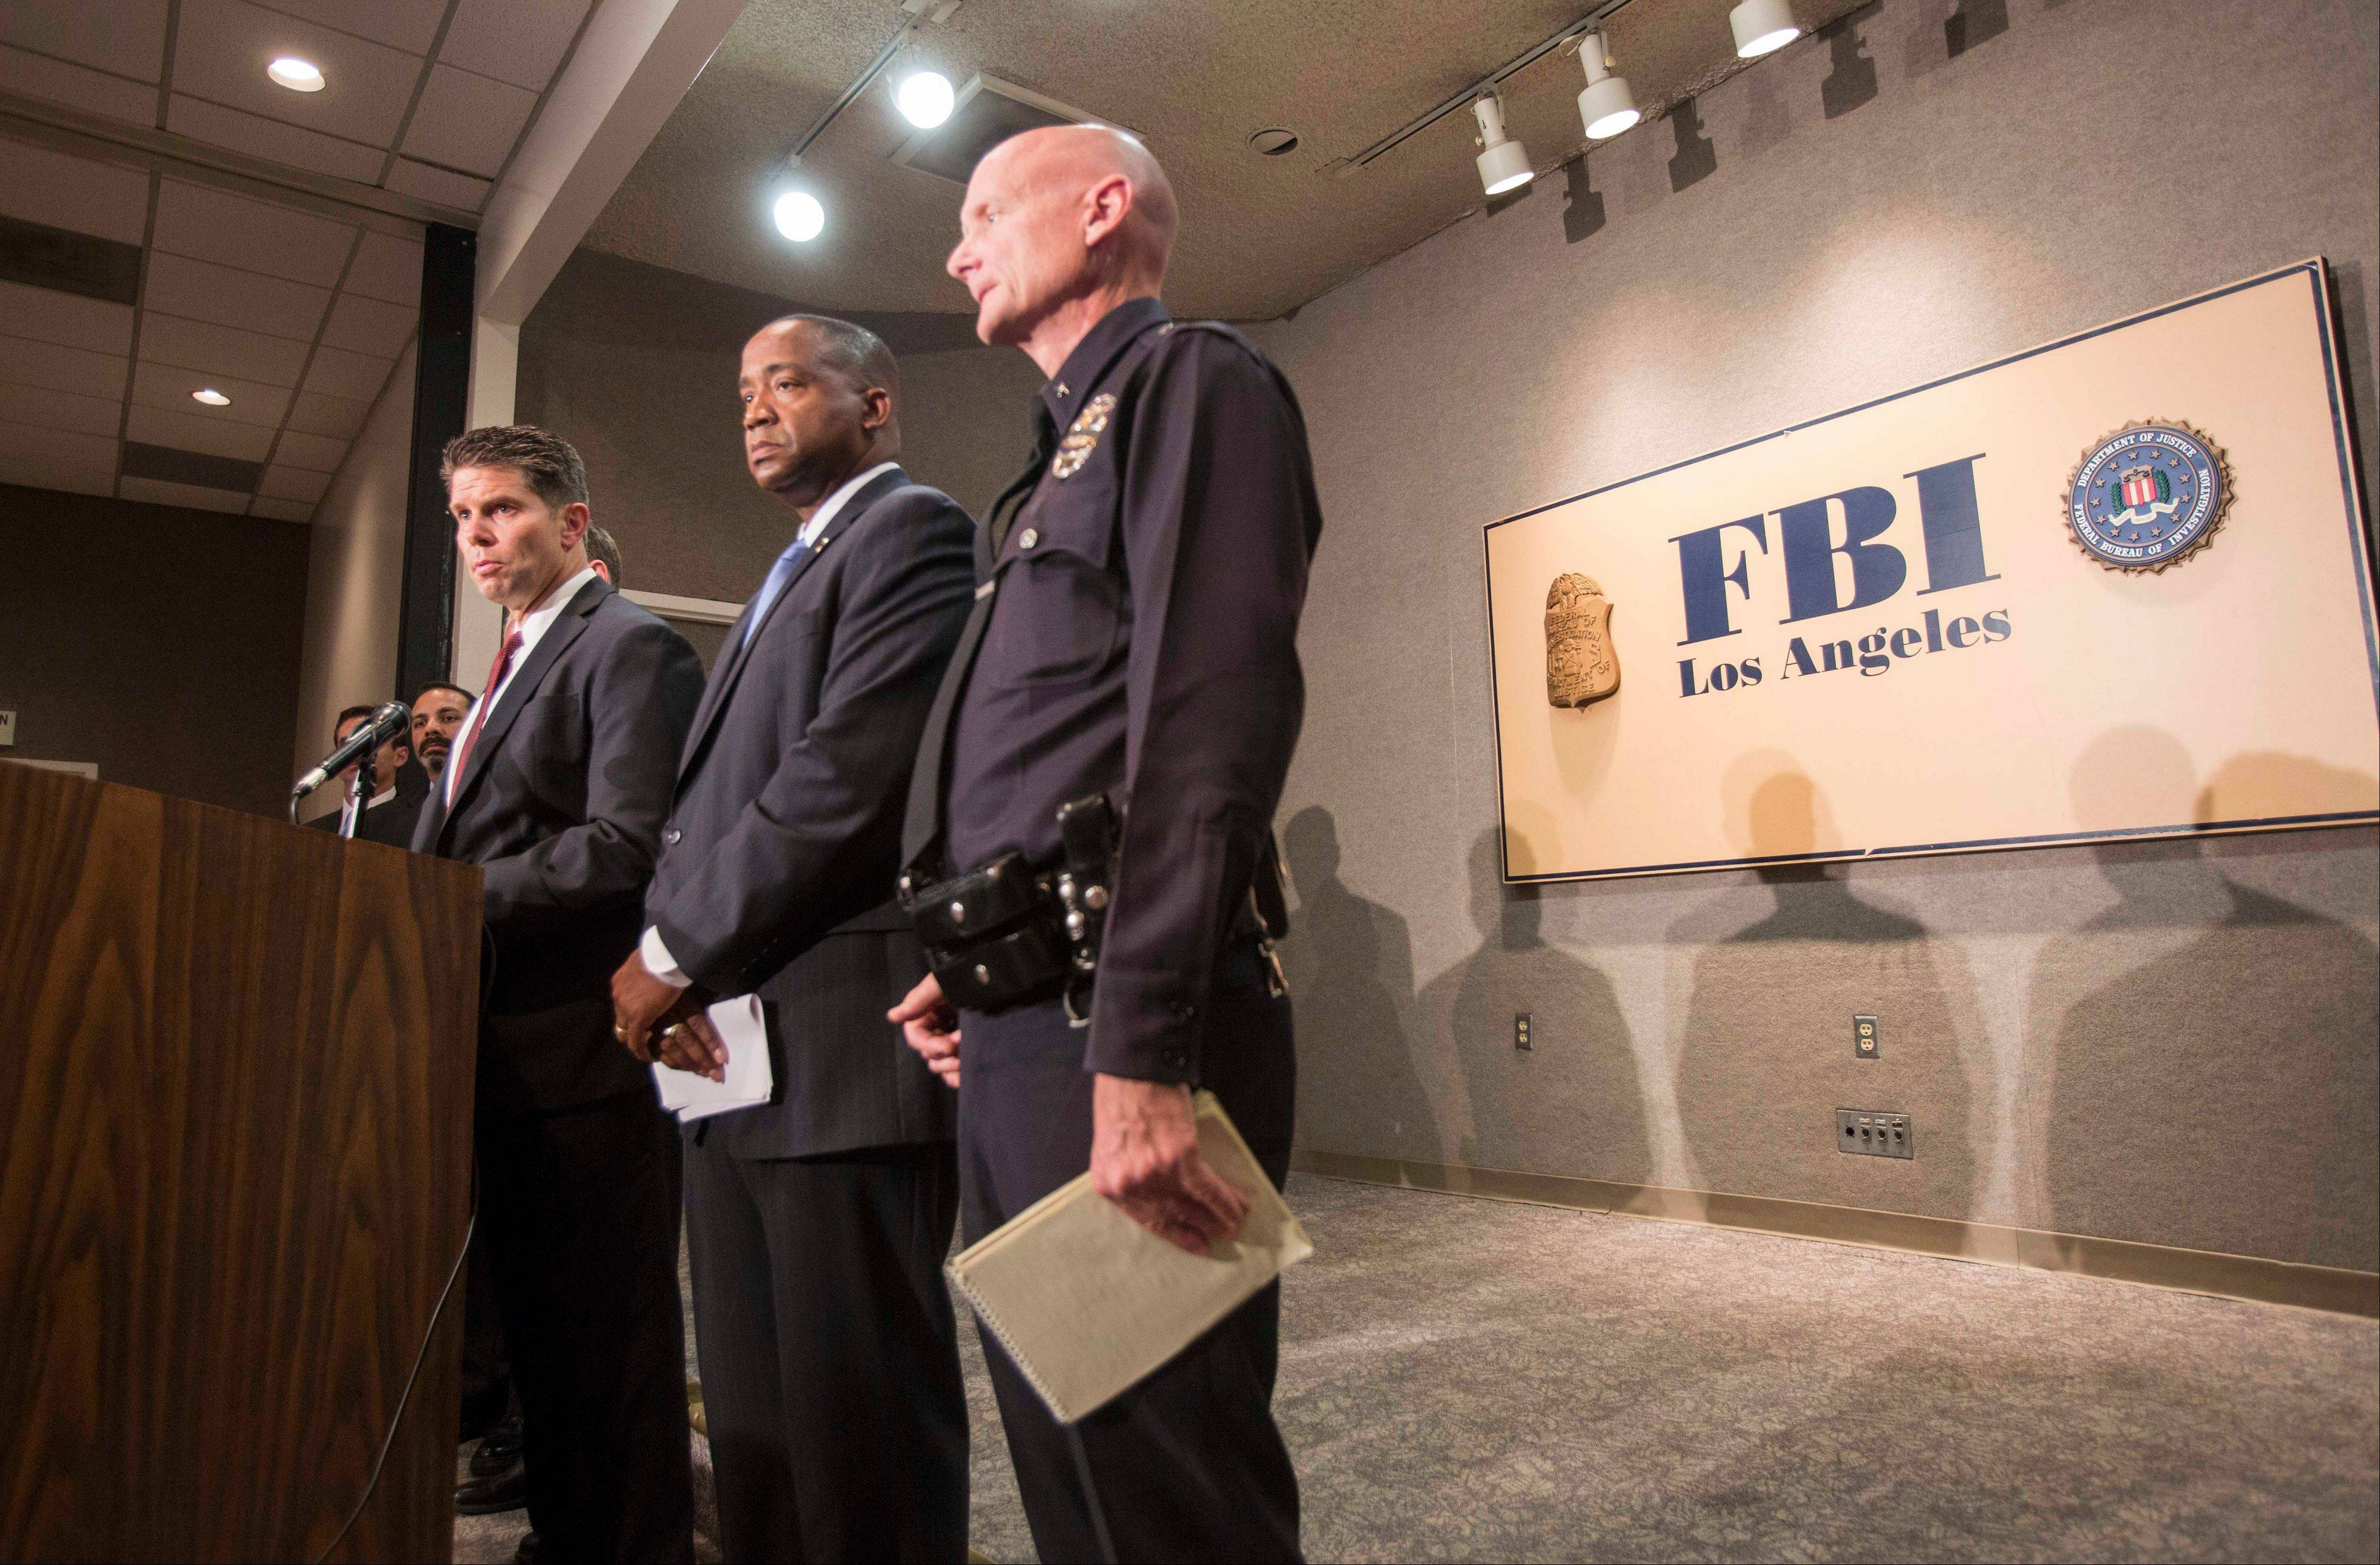 From left to right, FBI Special Agent in Charge David L. Bowdich, U.S. Attorney Andre Birotte Jr. and Los Angeles Police Department Commander Andrew Smith provide an update Saturday on the investigation into the shooting Los Angeles International Airport.